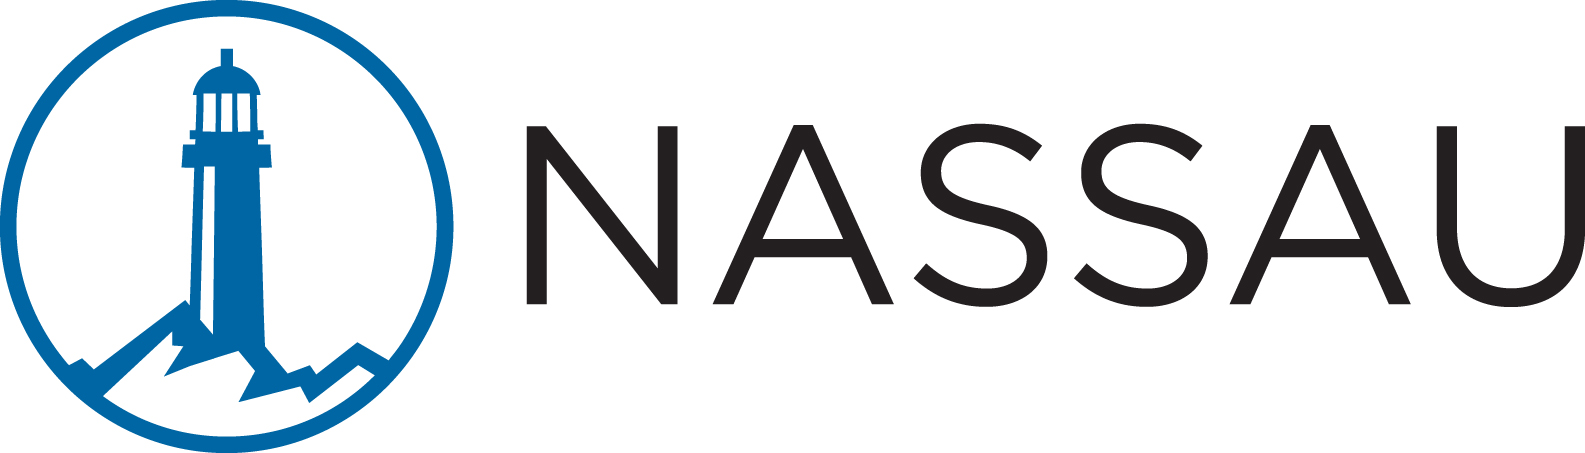 Nassau Financial Group Completes Acquisition of Foresters Life Insurance and Annuity Company